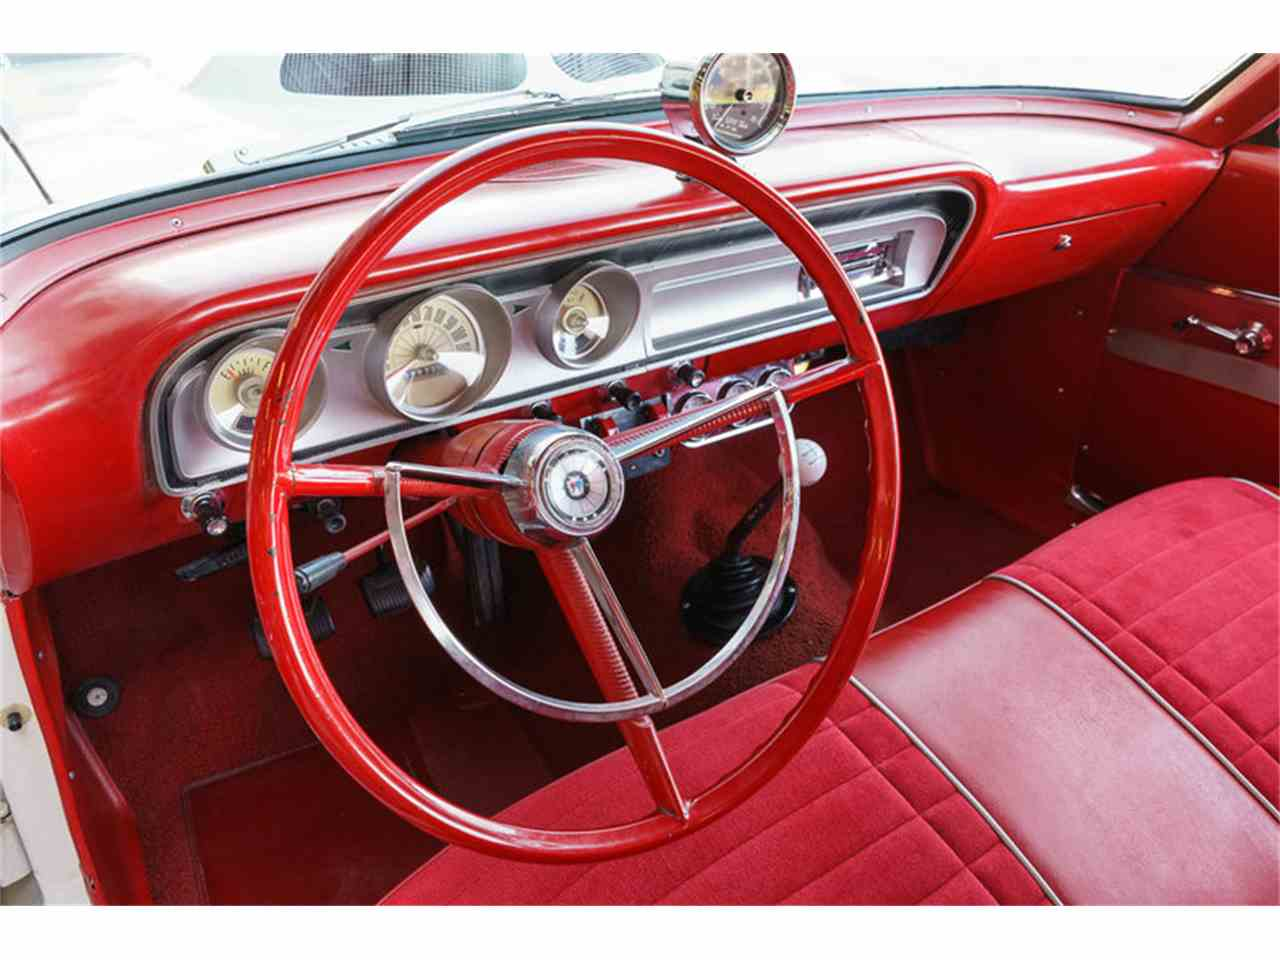 Large Picture of Classic '64 Model A located in St. Charles Missouri - $32,995.00 - GX4F